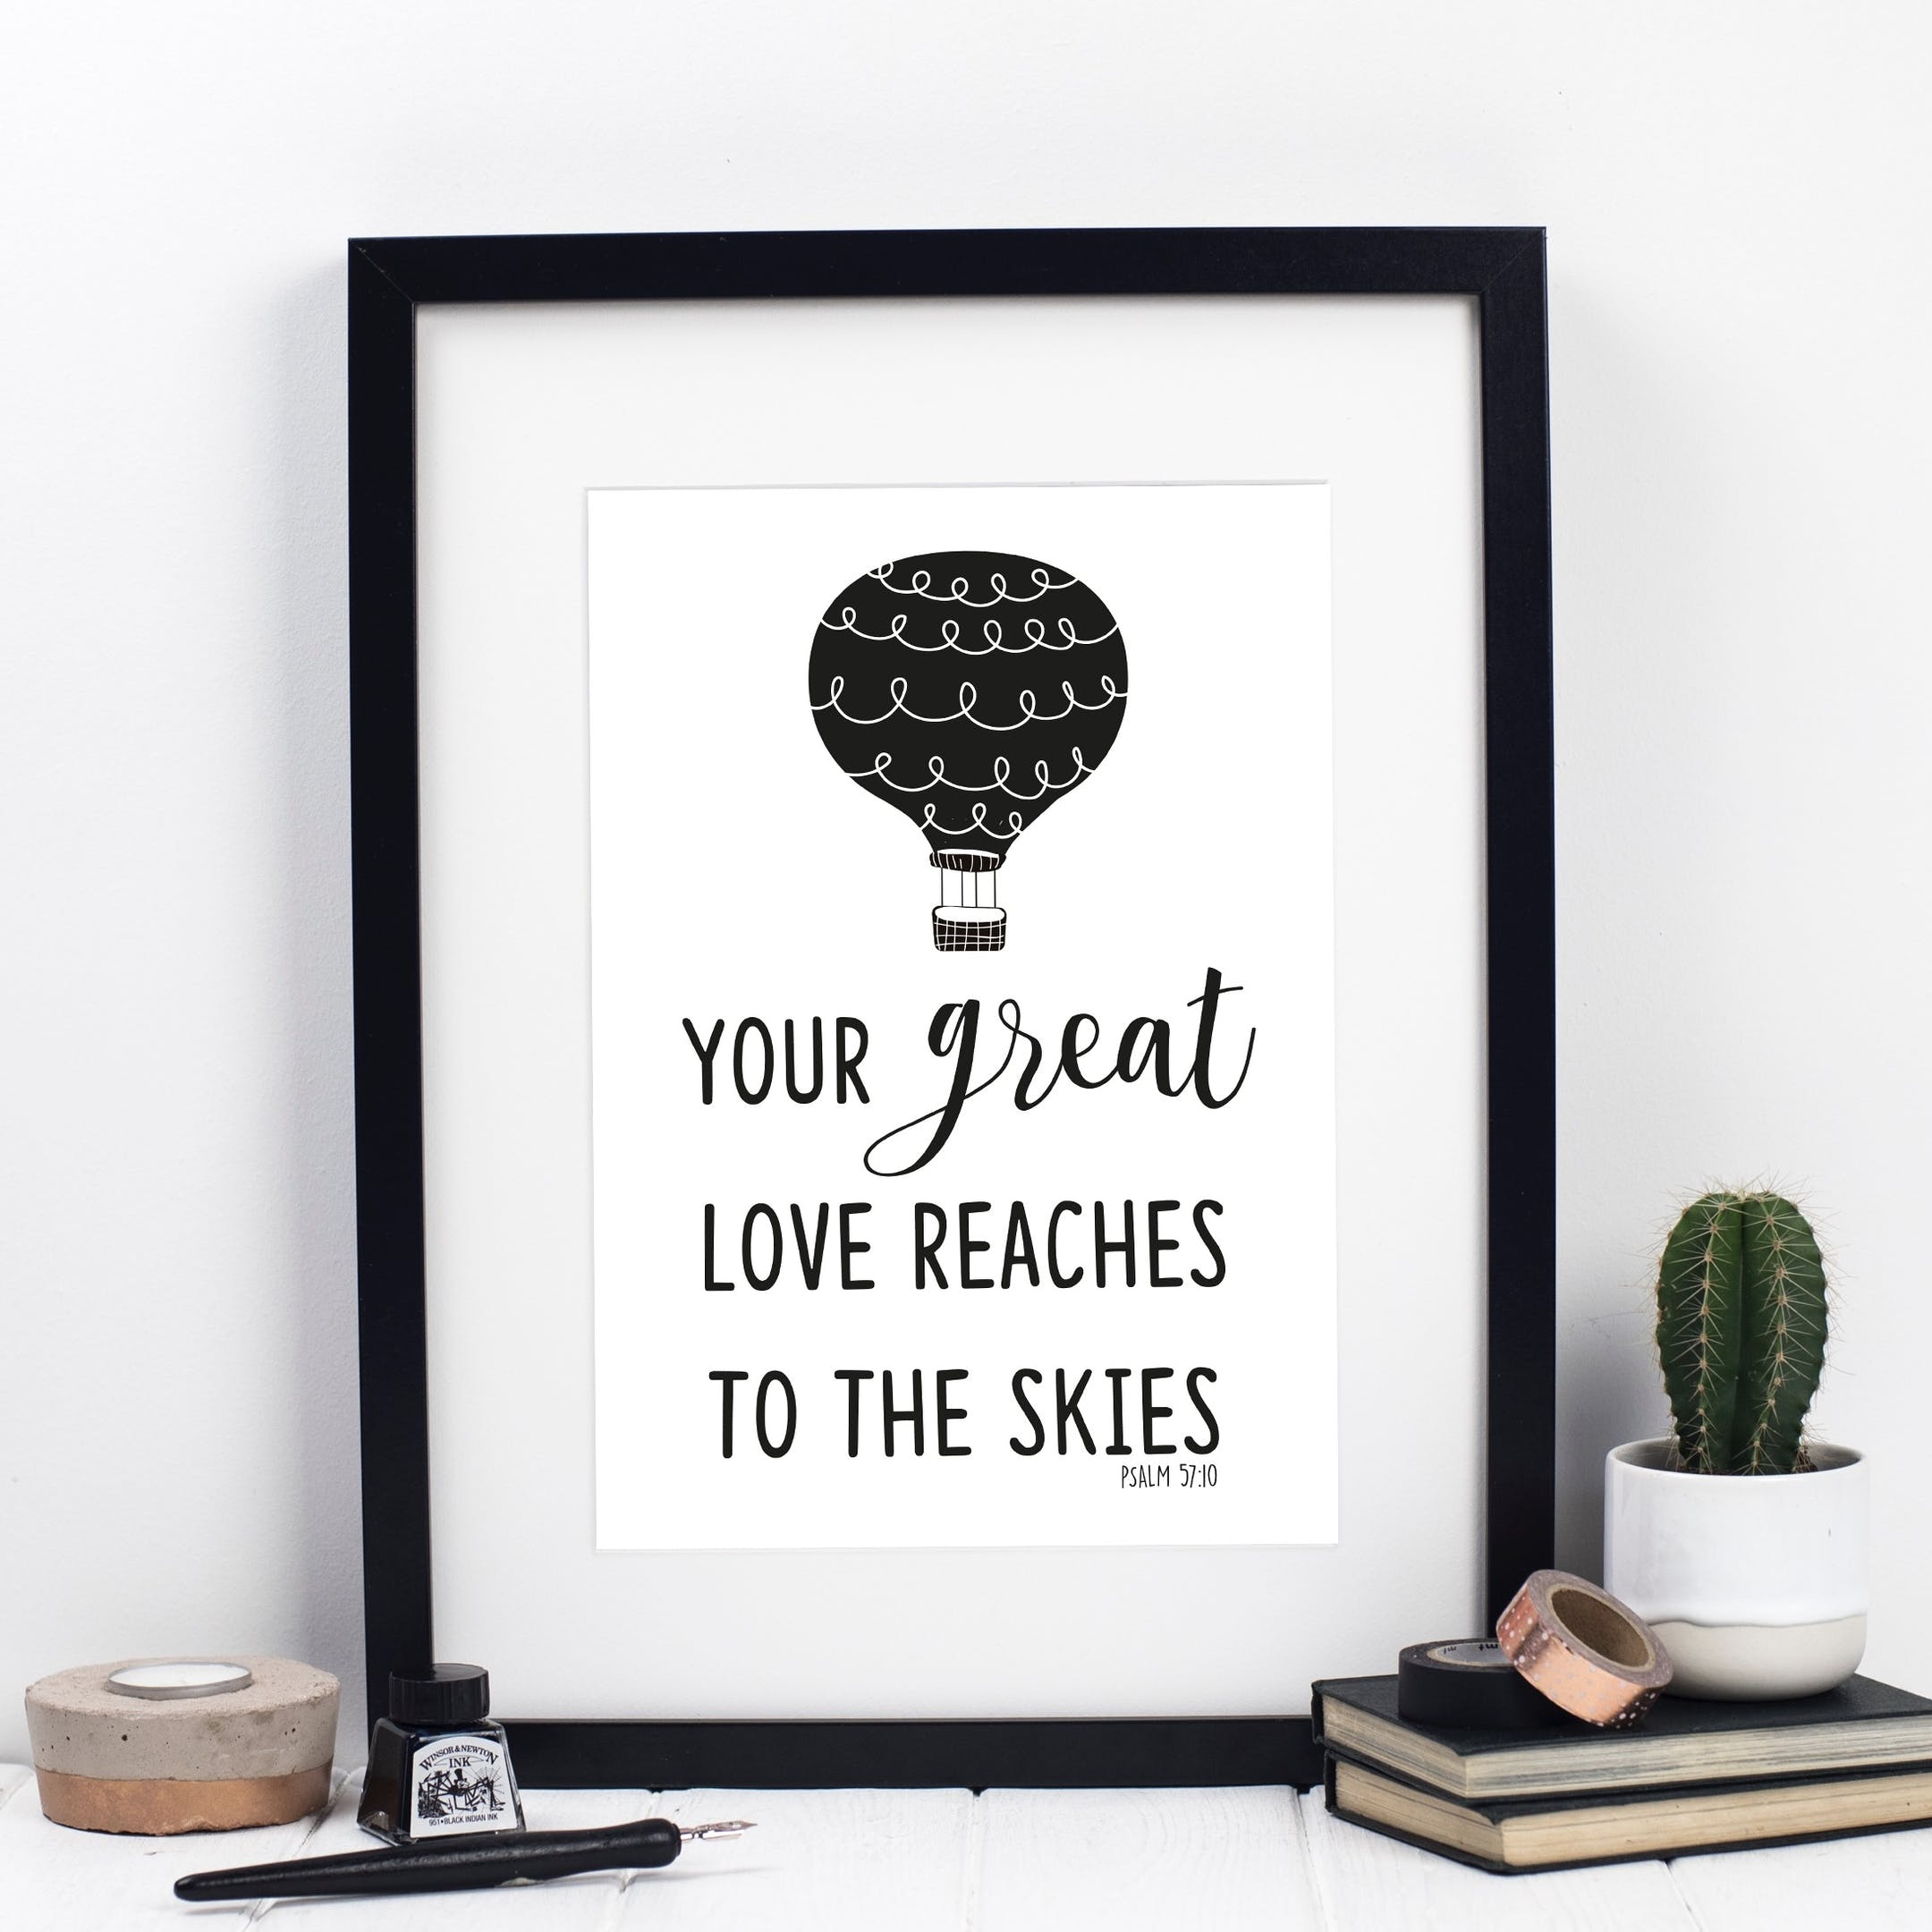 Psalm 57:10 Print - Your Great Love Reaches To The Skies - Izzy and Pop